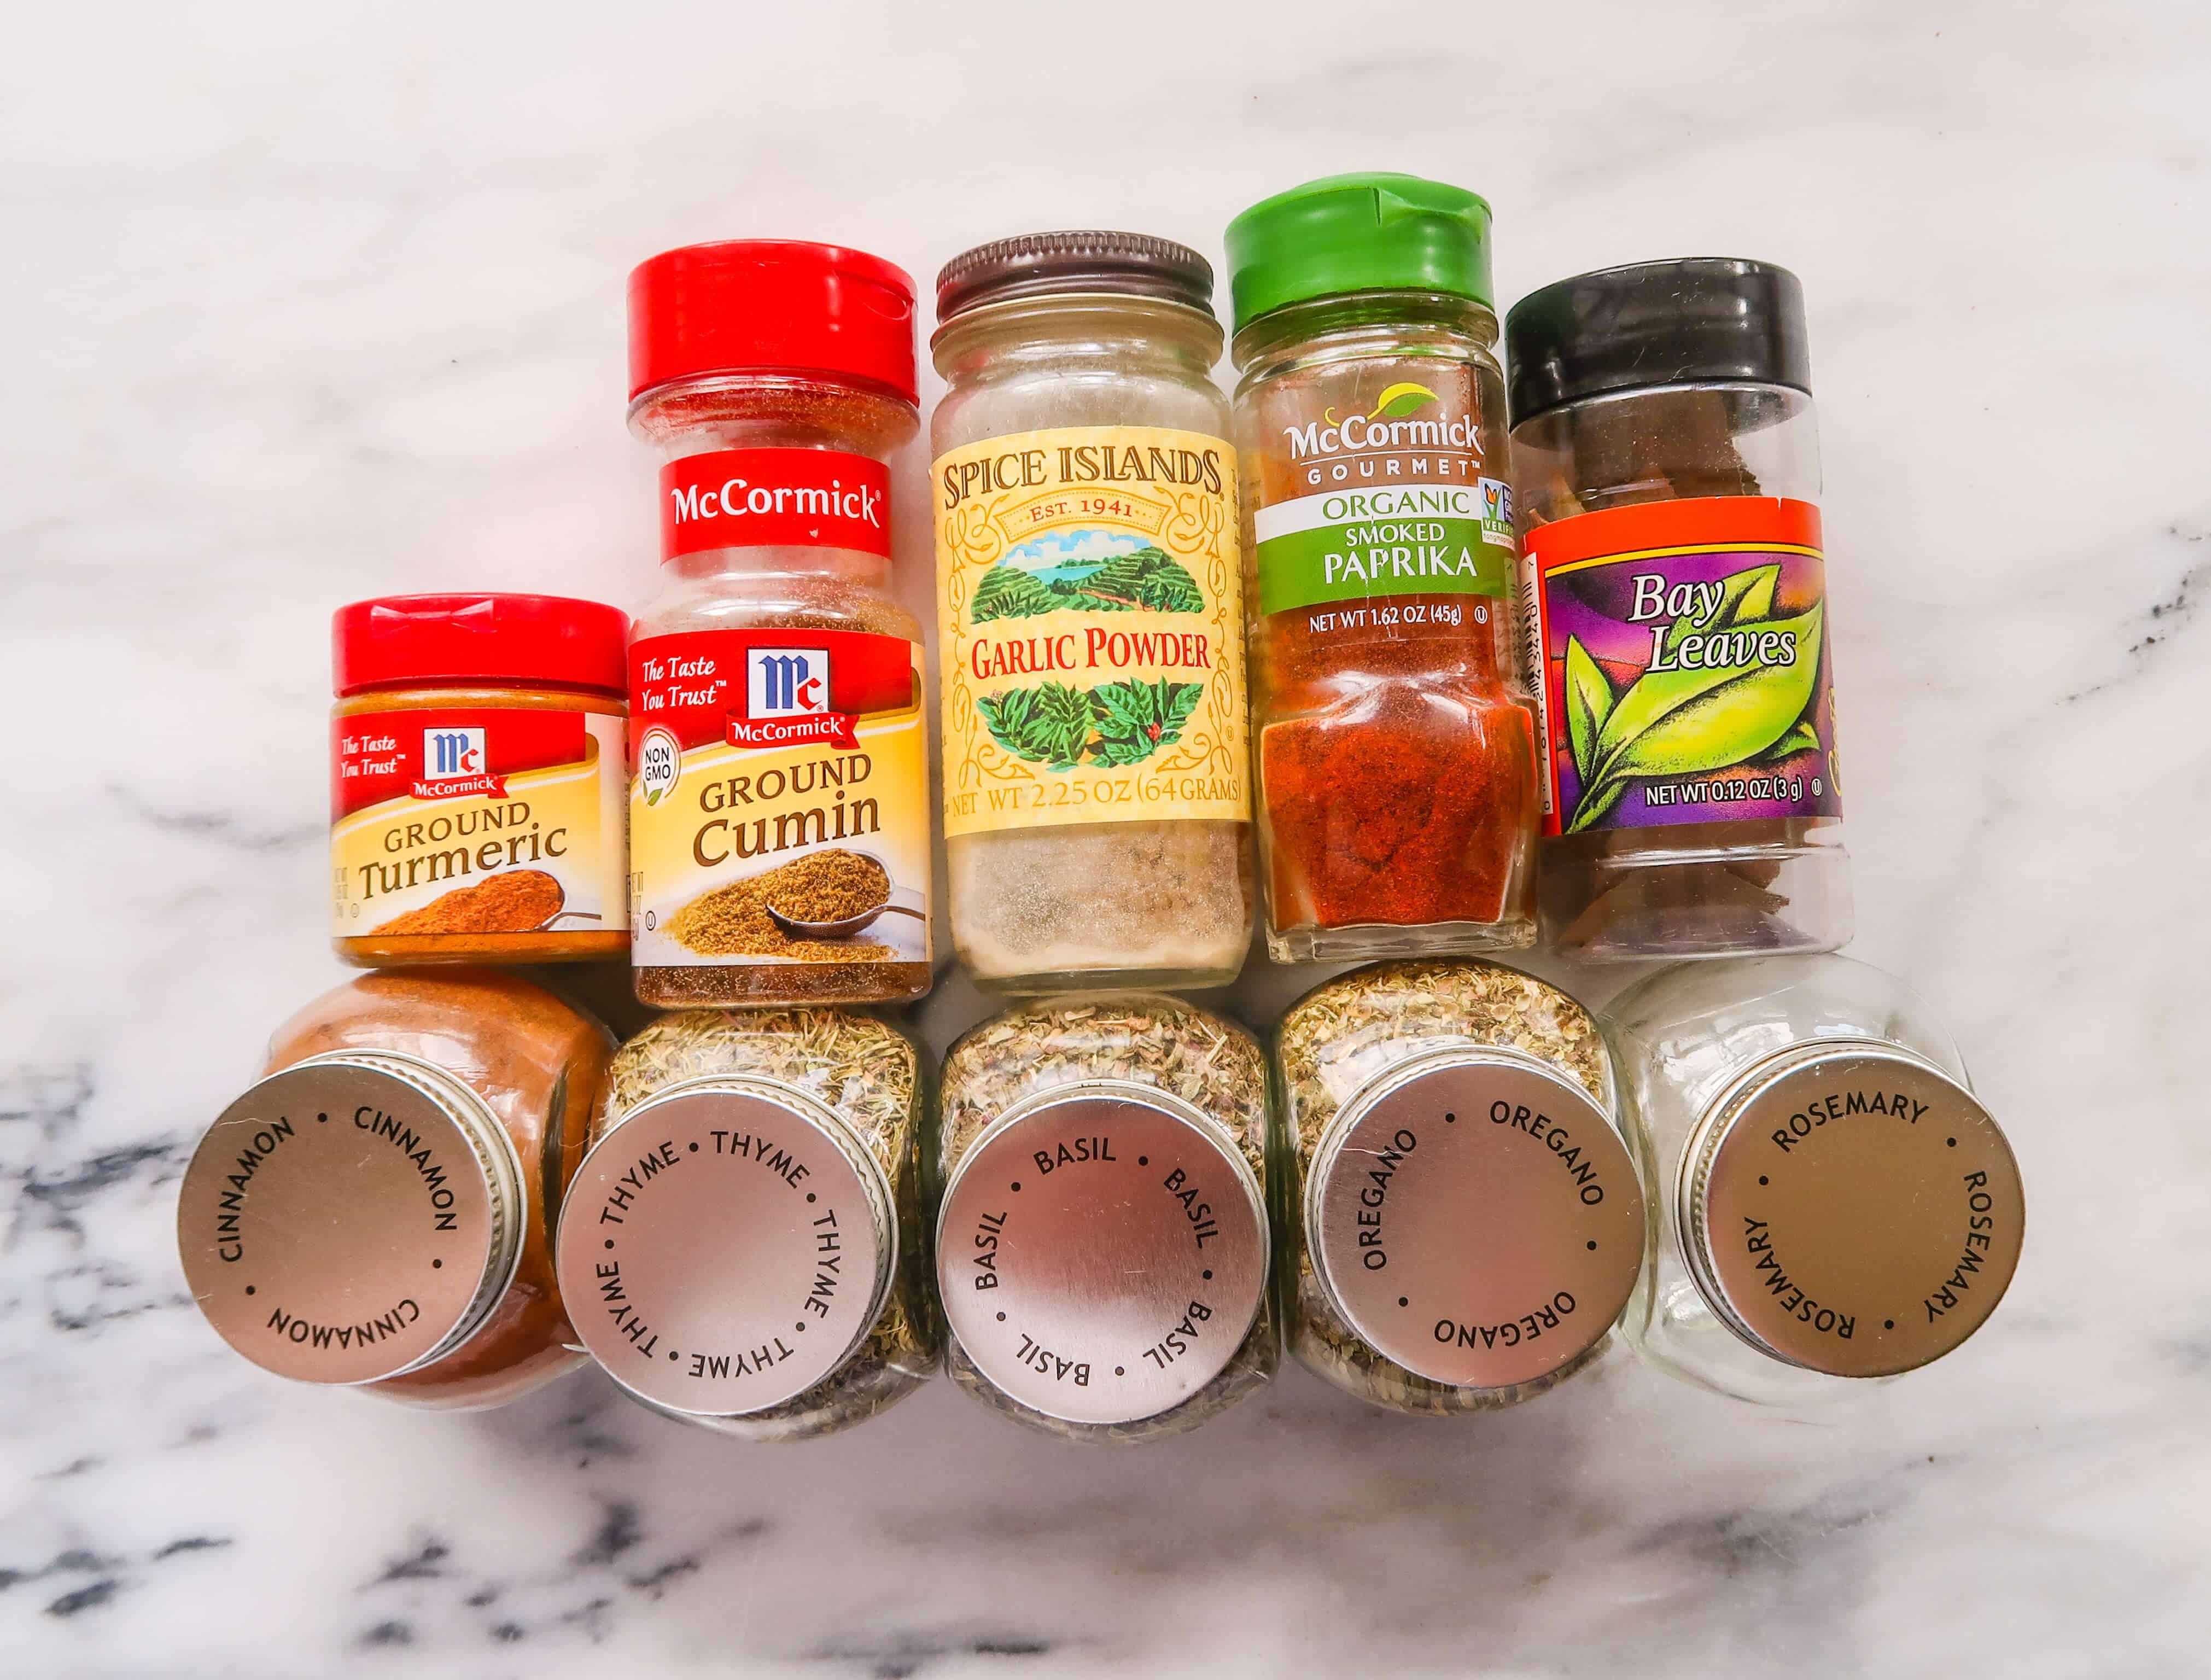 10 Spices You Need In Your Pantry #saveeandsavory #healthycooking #pantryessentials #healthyliving #basil #smokedpaprika #bayleaf #cumin #garlicpowder